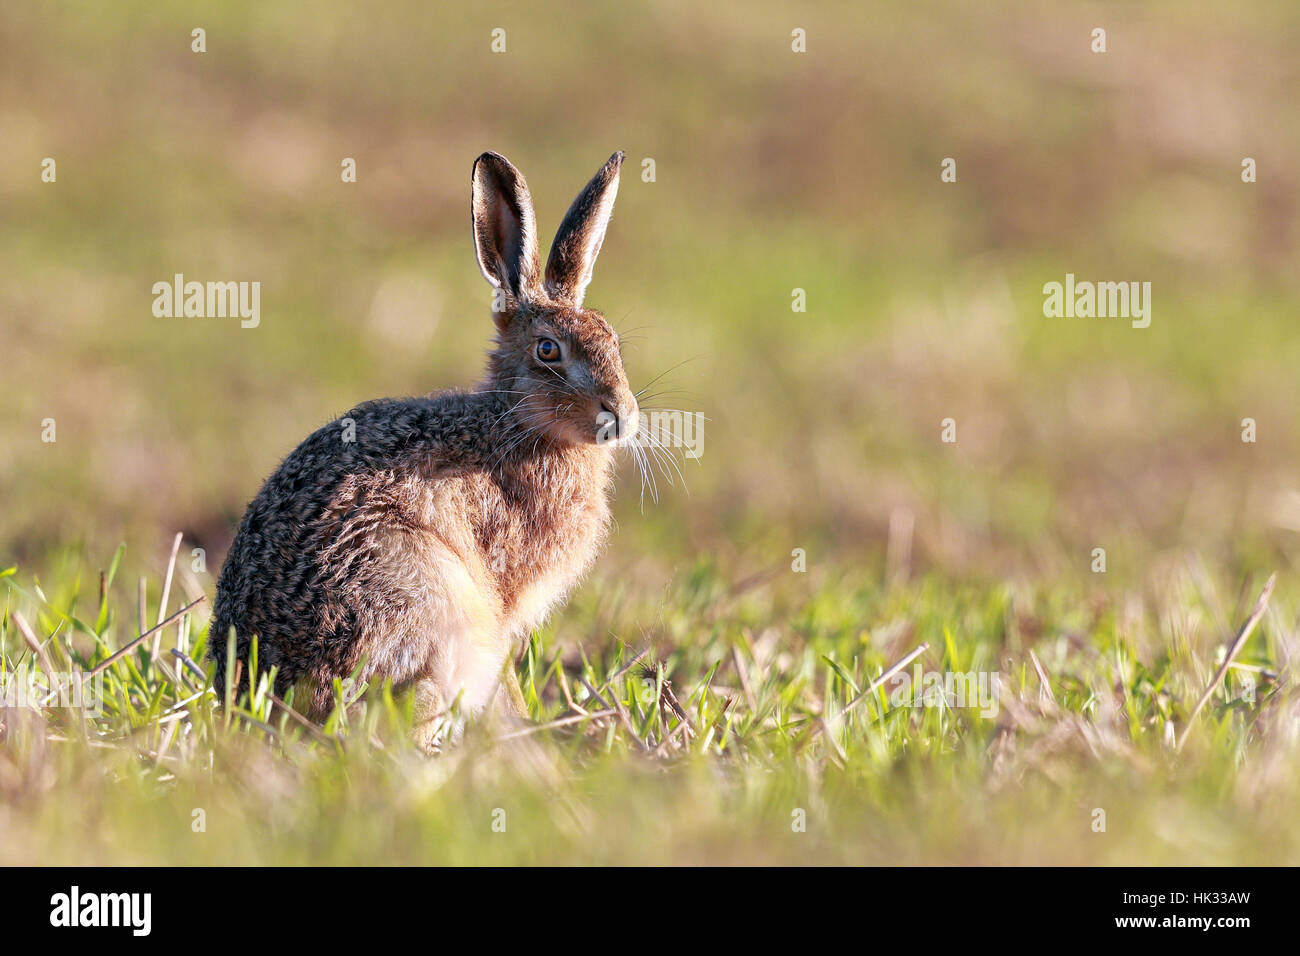 Brown hare feeding in the grass verges - Stock Image